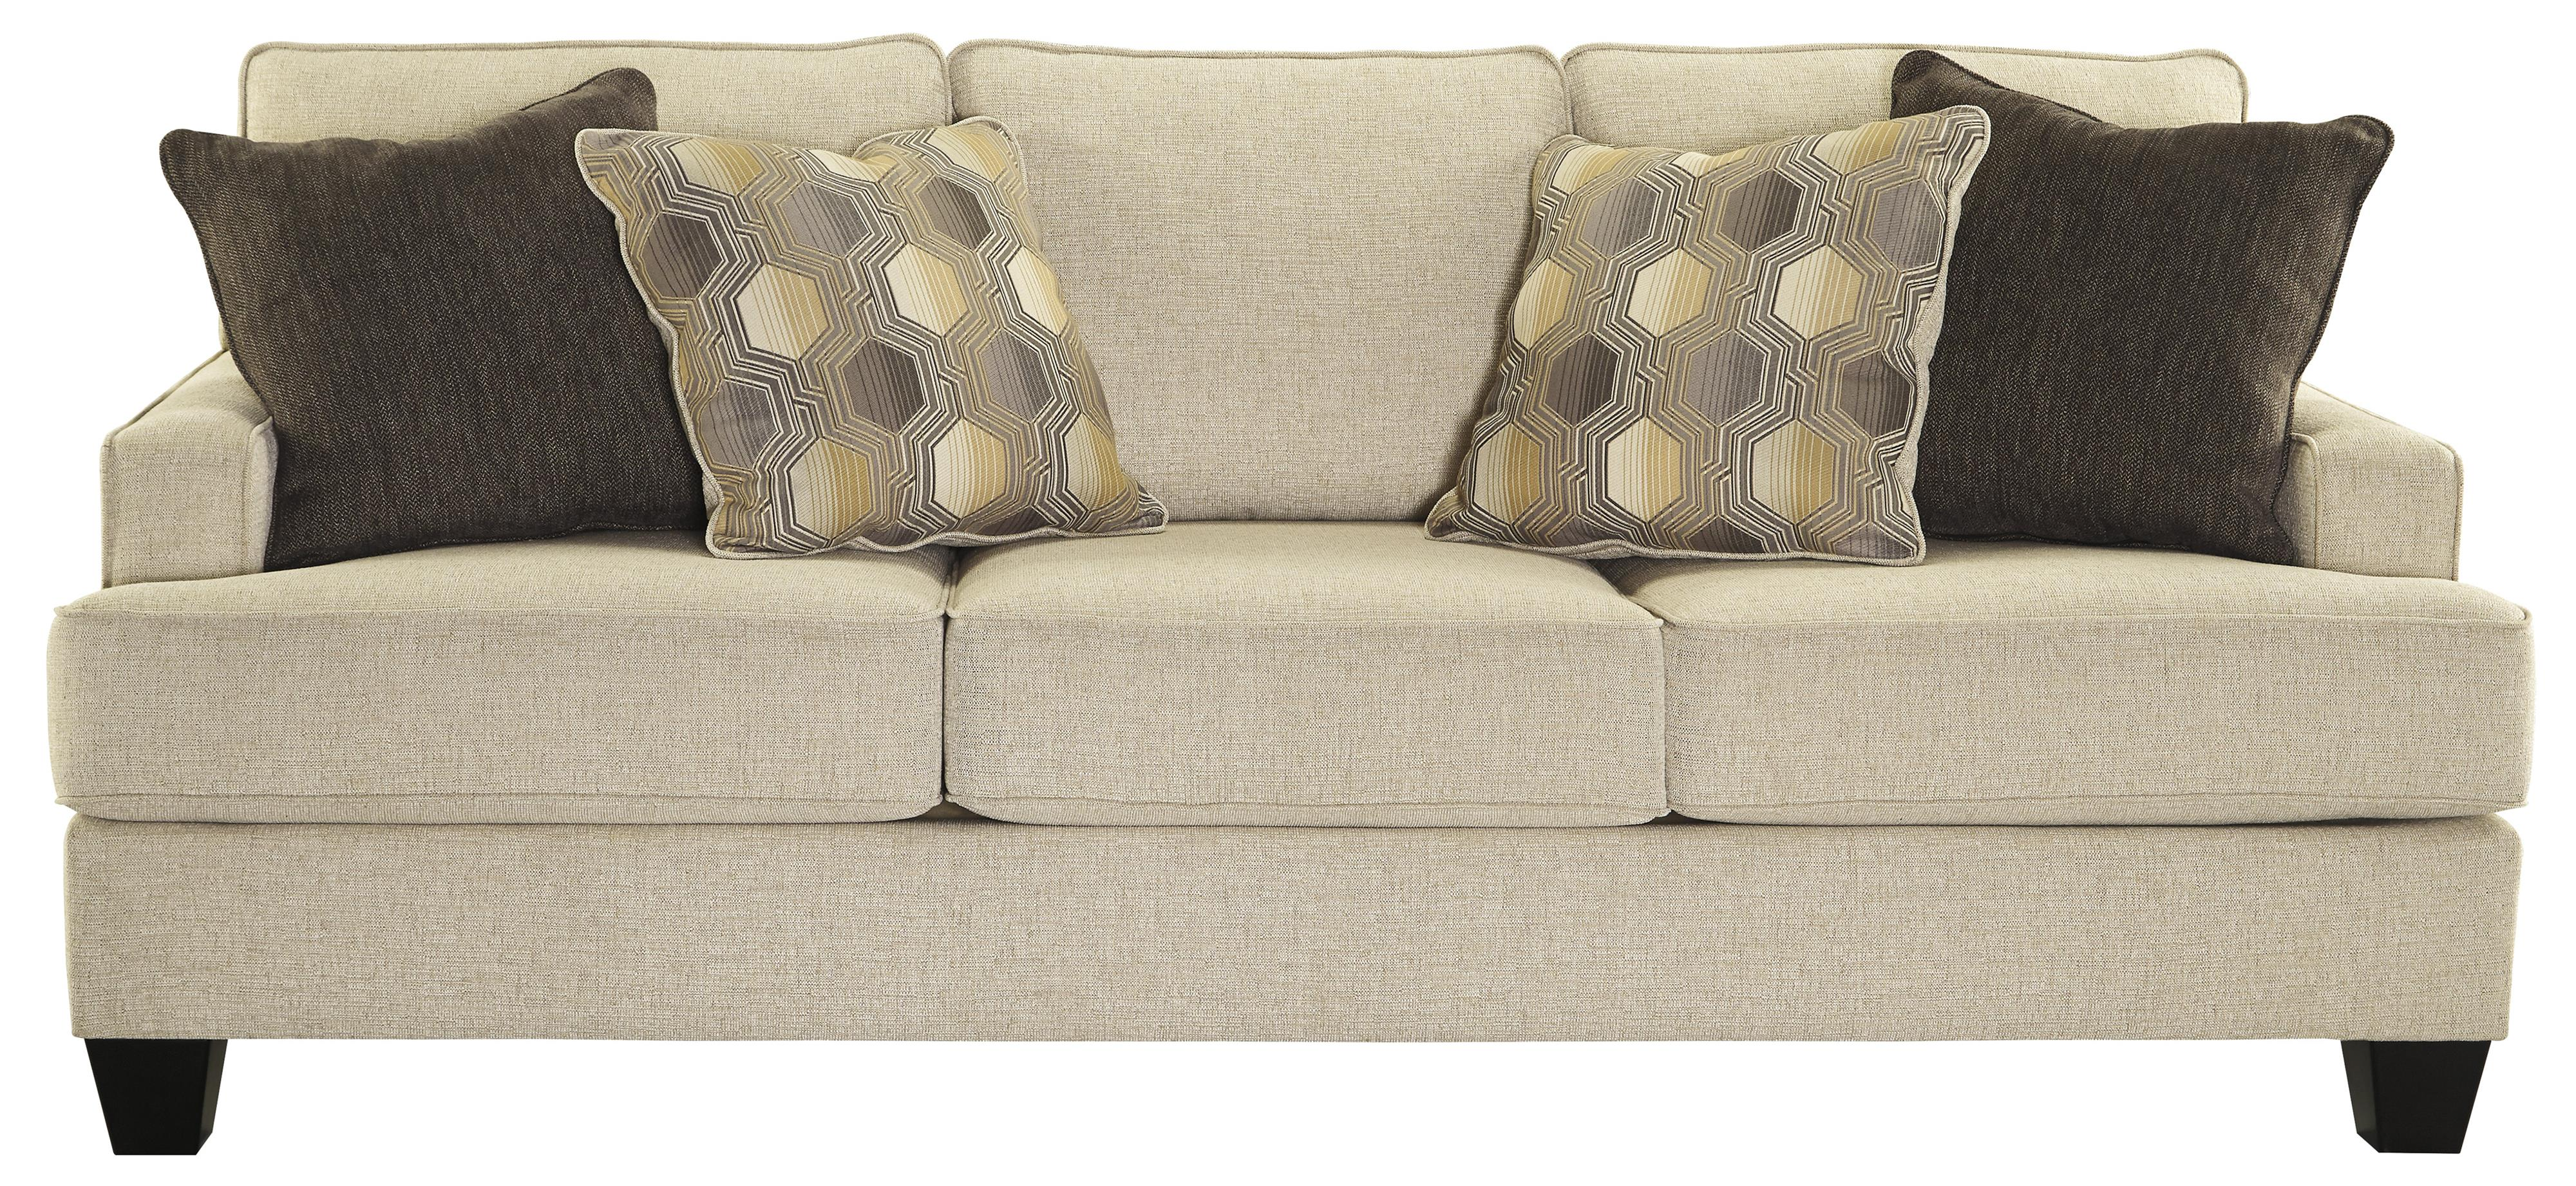 Queen Sofa Bed Brielyn Queen Sofa Sleeper With Memory Foam Mattress And Track Arms By Benchcraft At Household Furniture